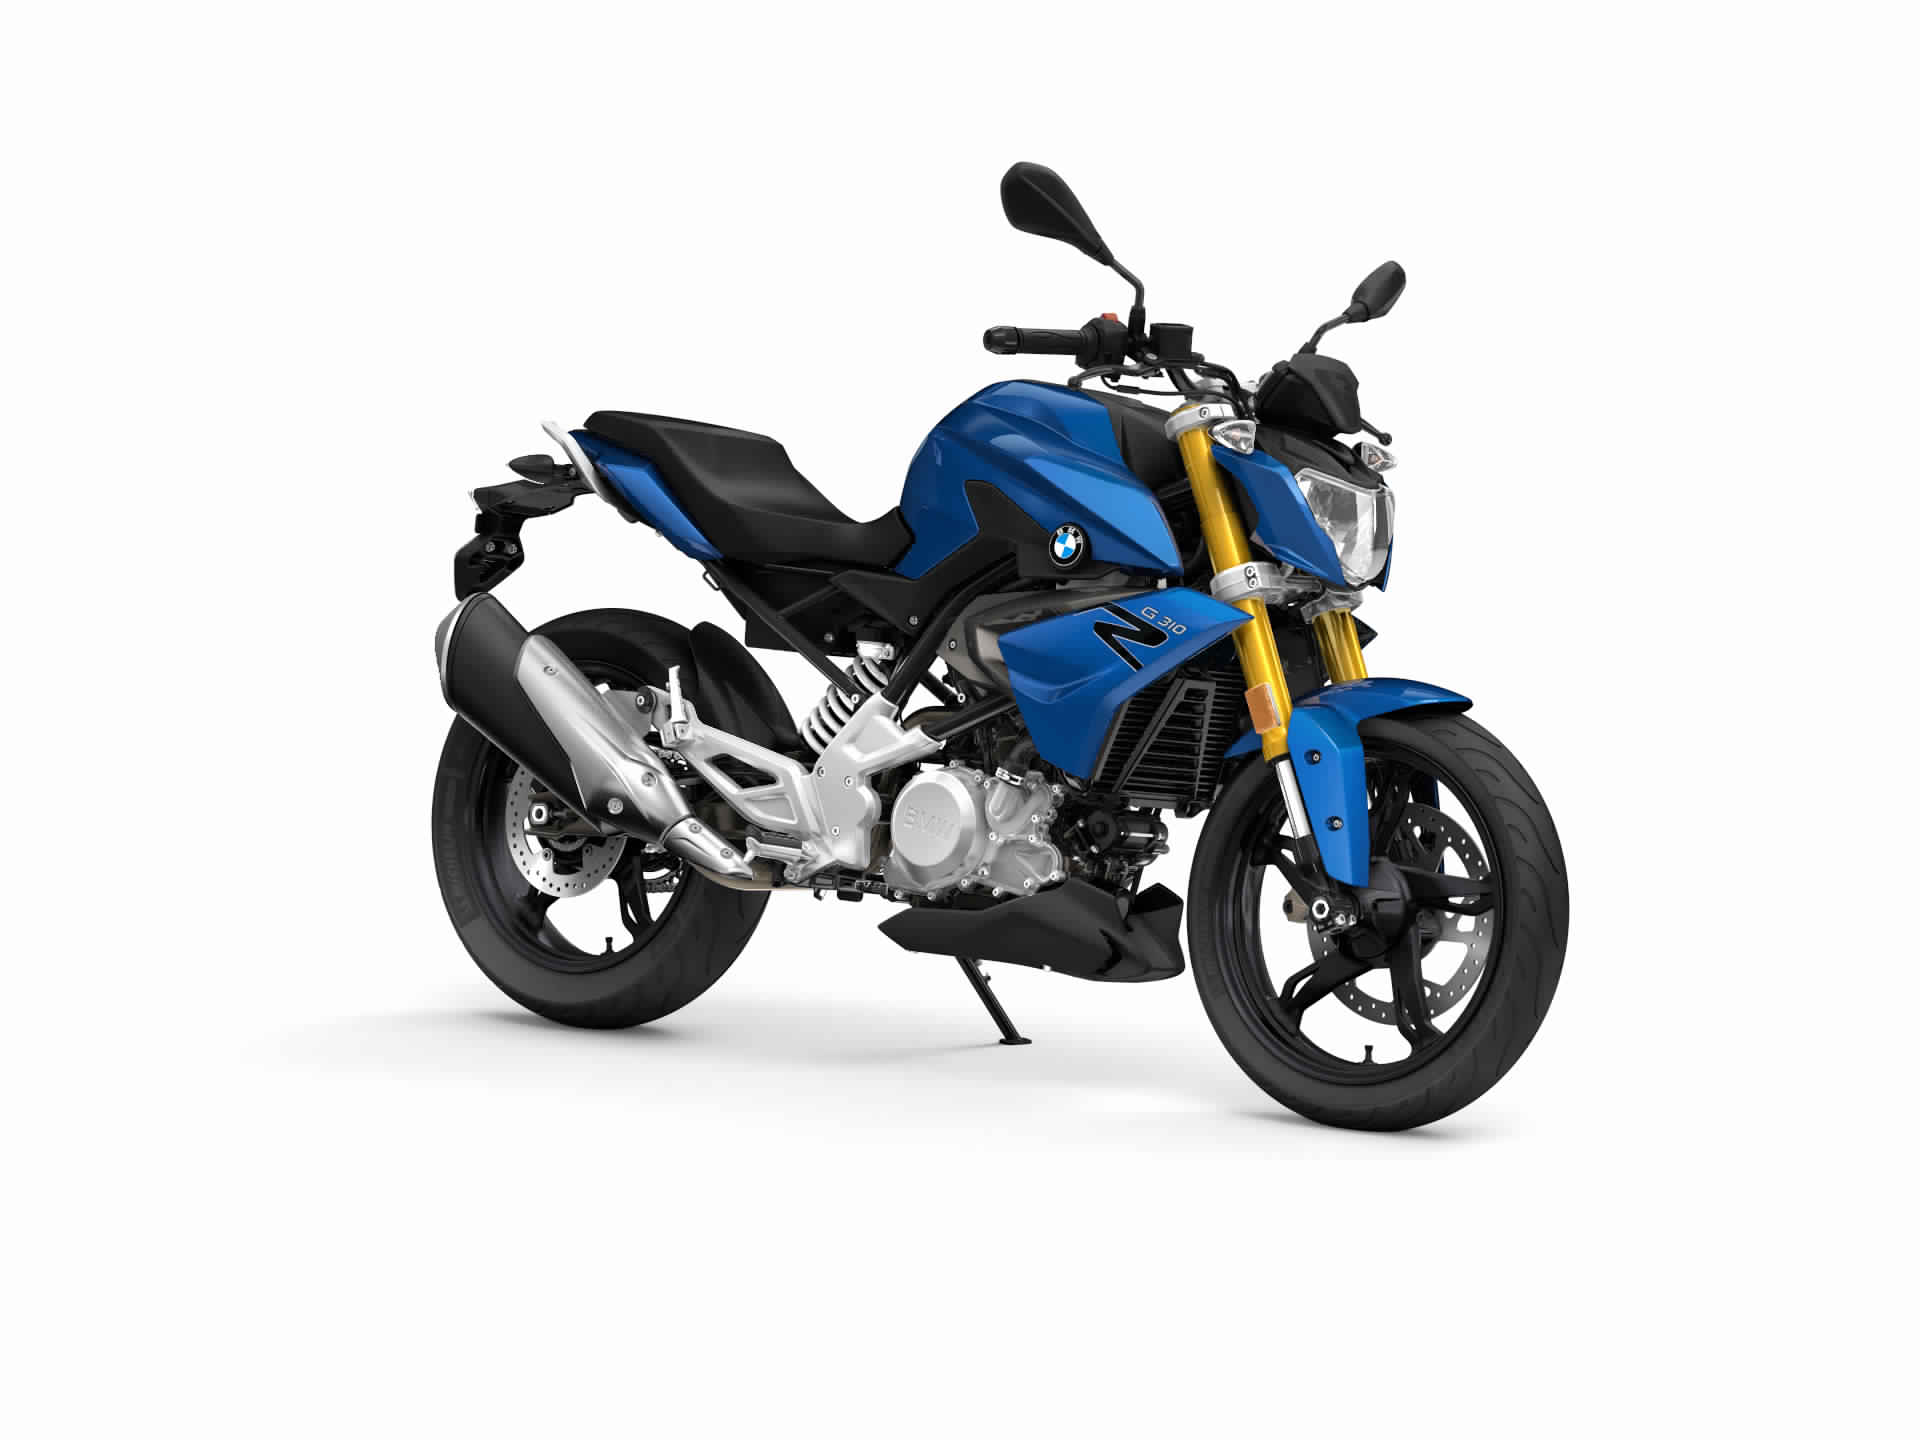 2020 BMW G 310 R & G 310 GS BS6 launch in October - autoX